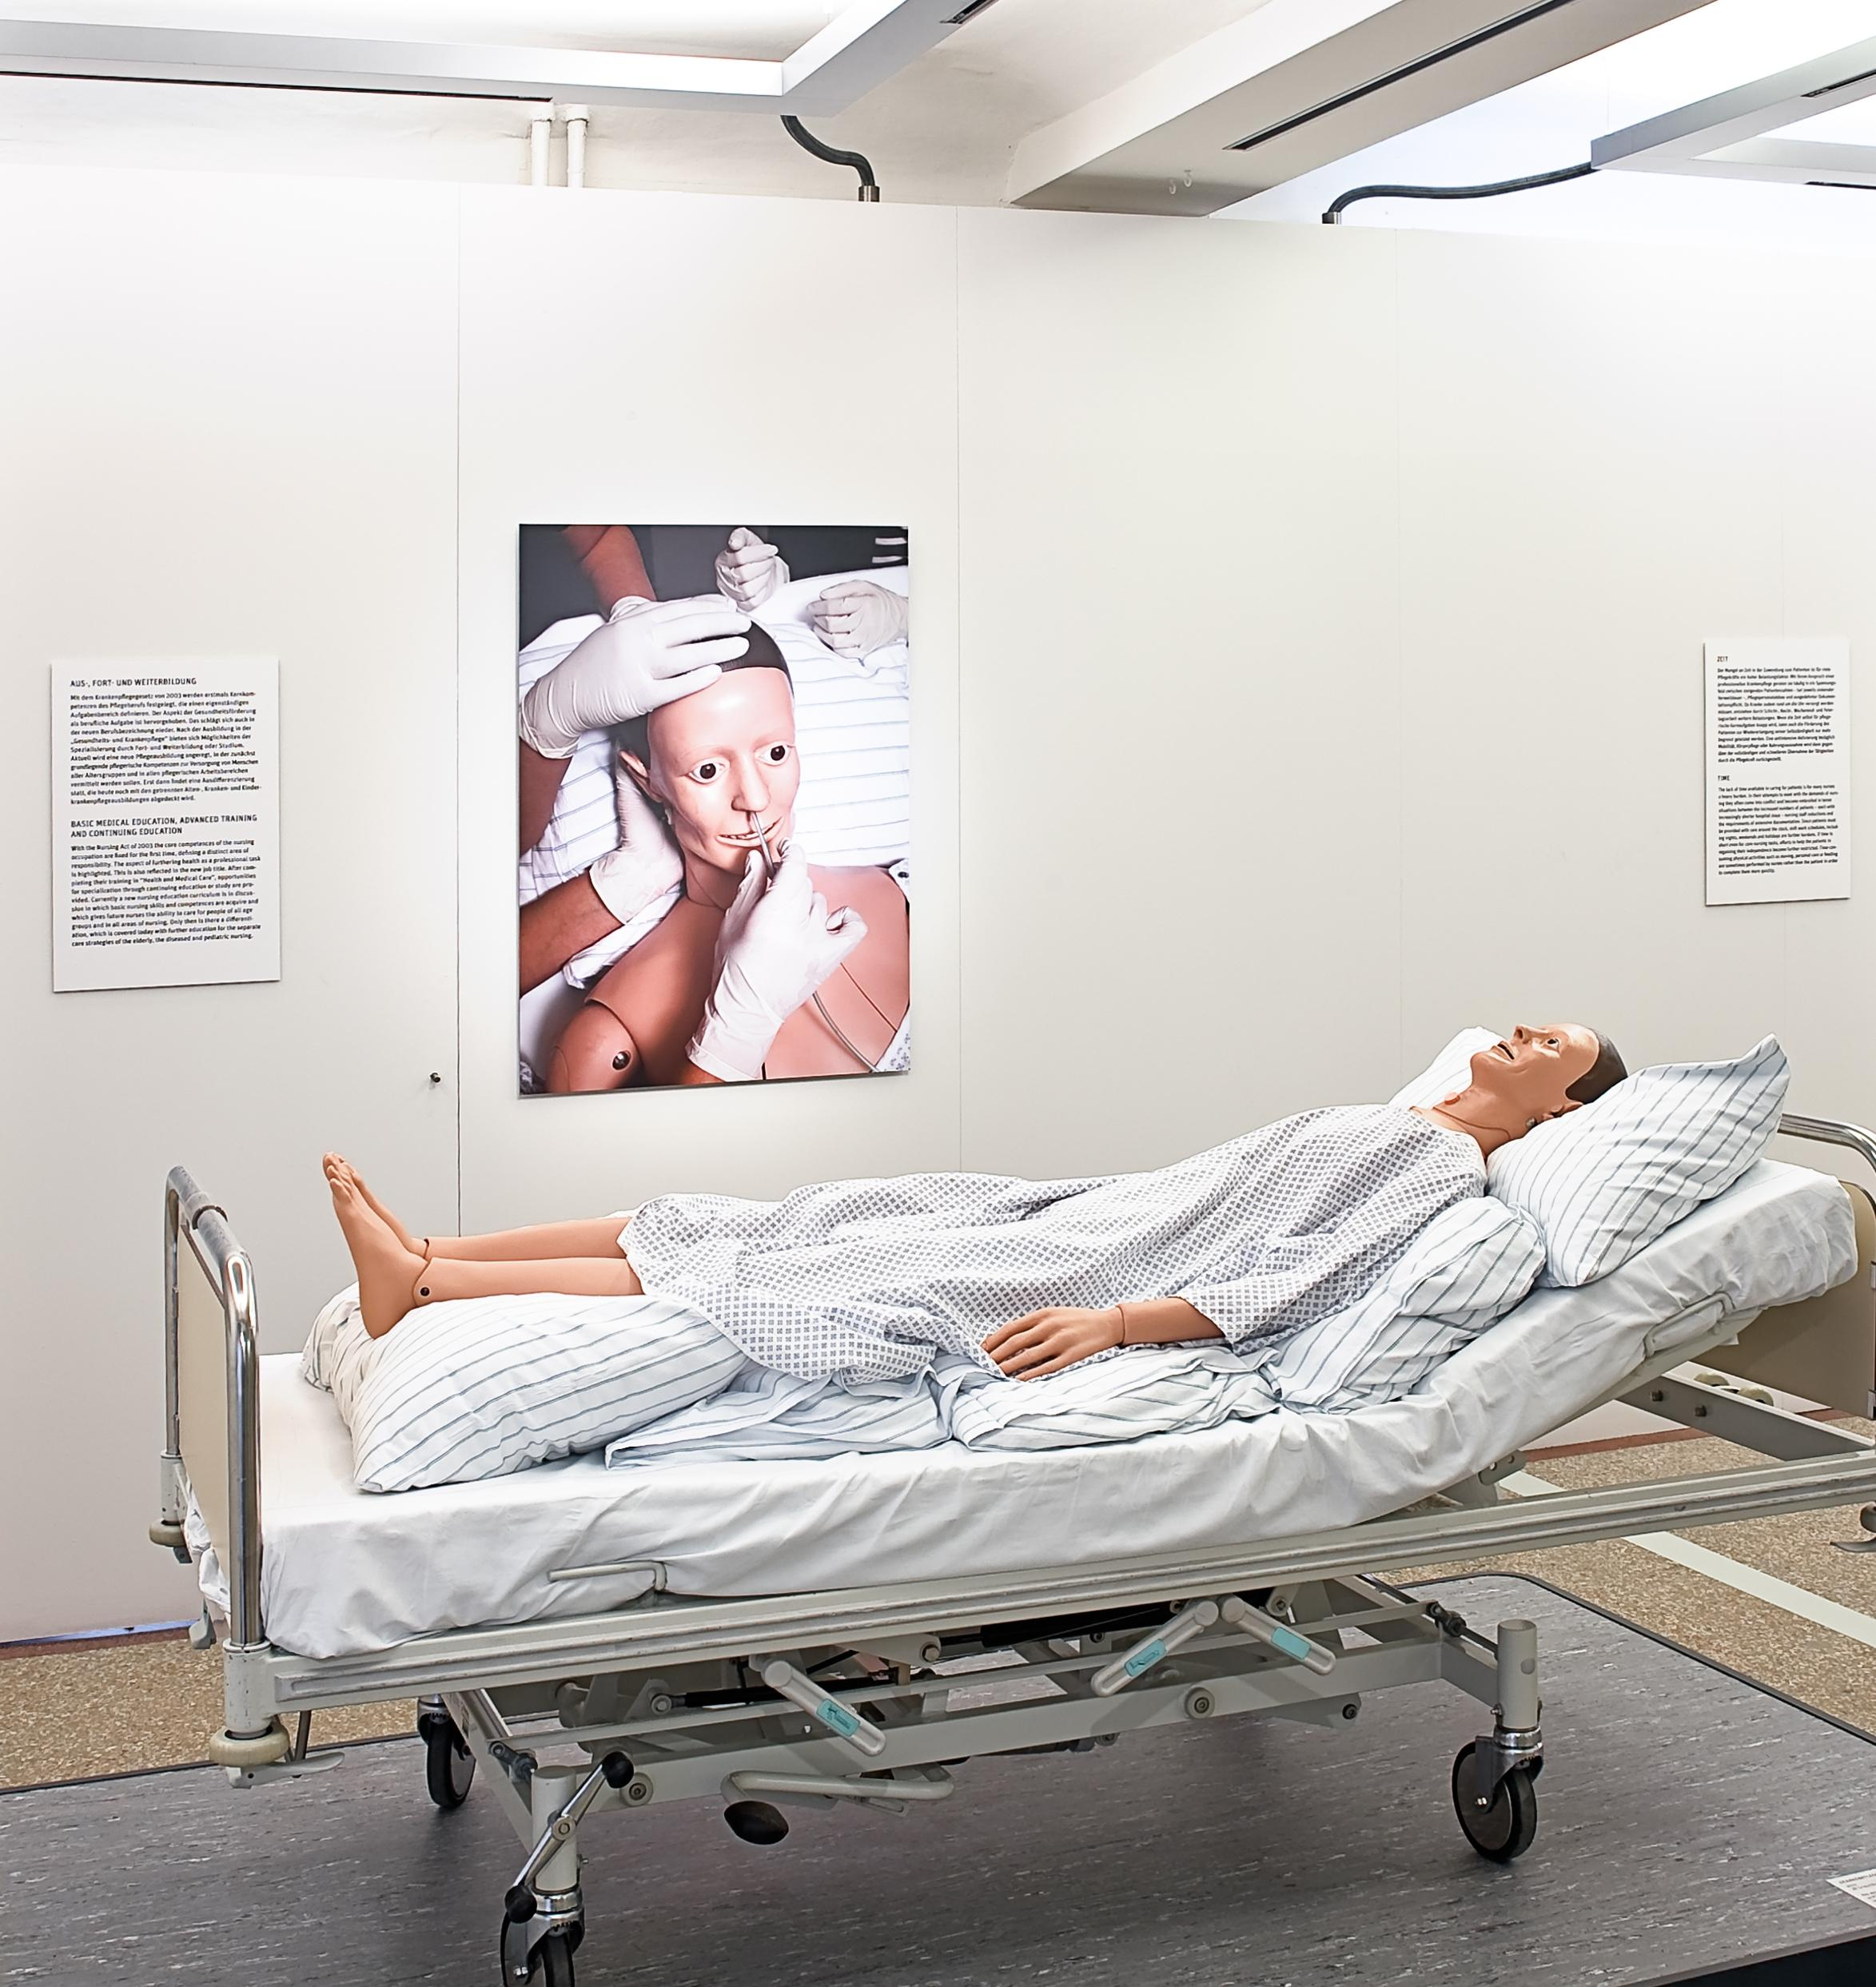 Manikin_exhibition_Berlin